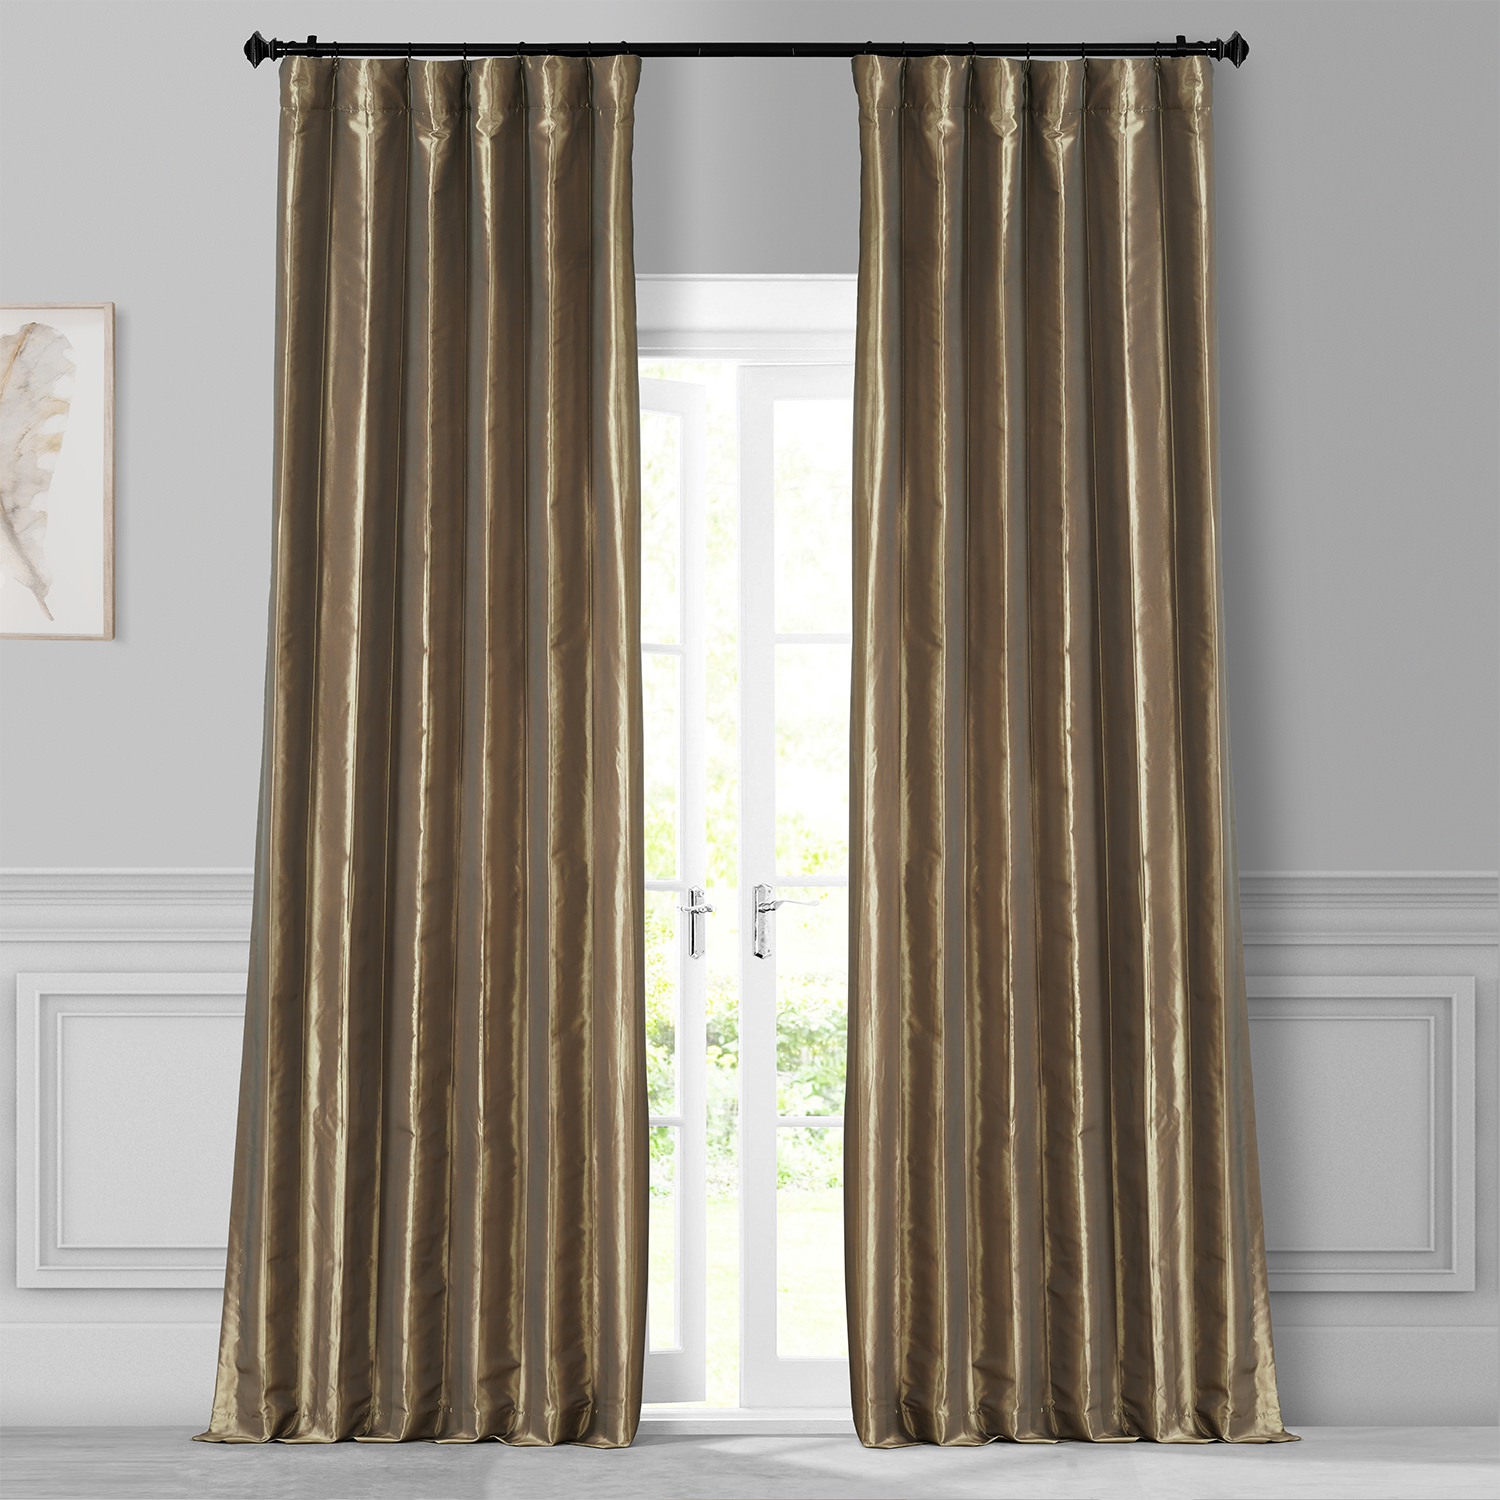 Gold Nugget Faux Silk Taffeta Curtain